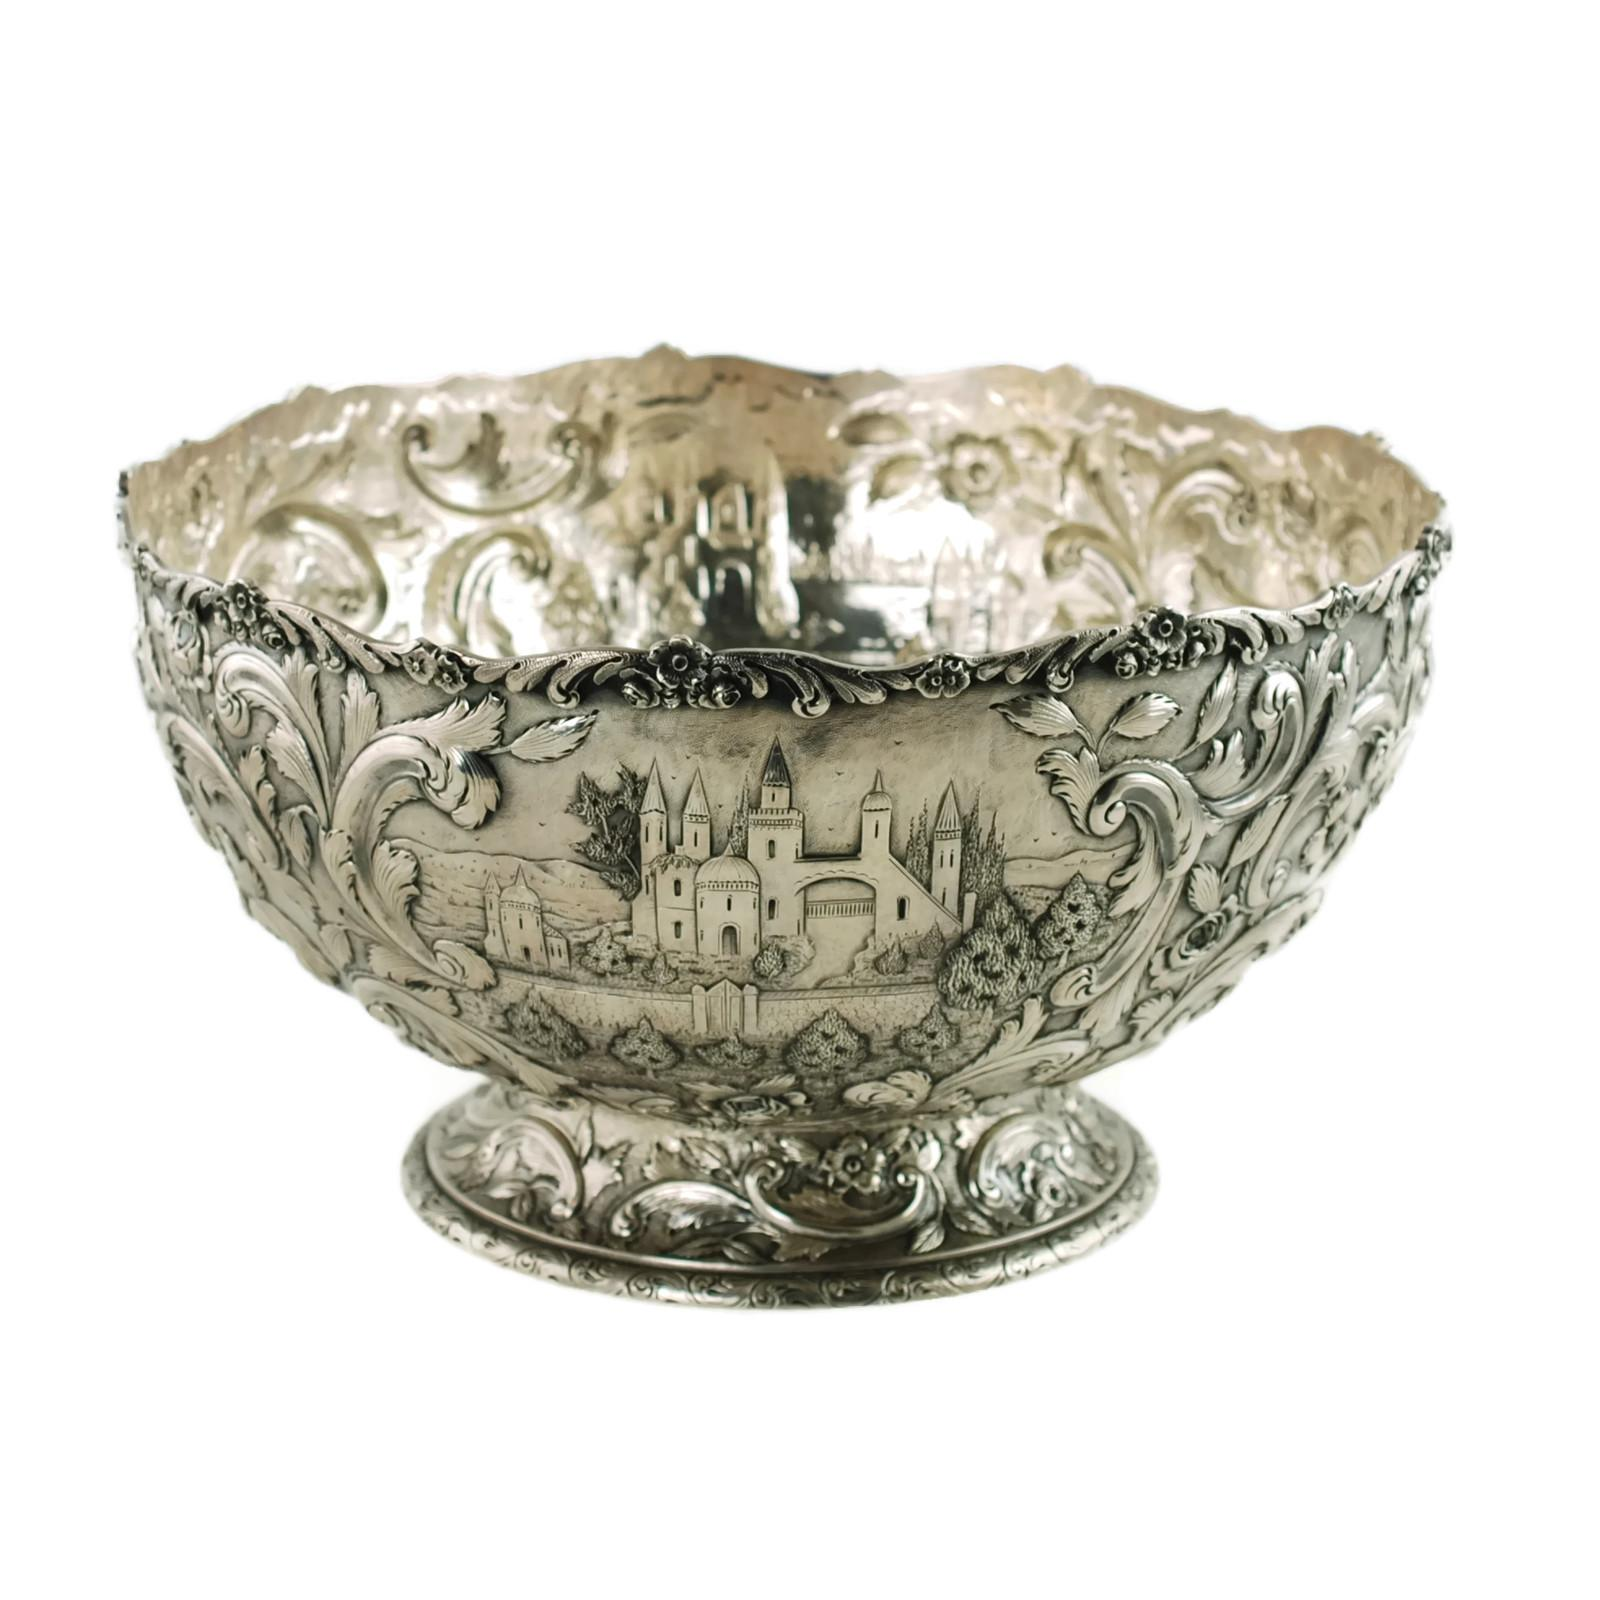 Large loring andrews sterling silver footed punch bowl repoussé castle pattern for sale at 1stdibs